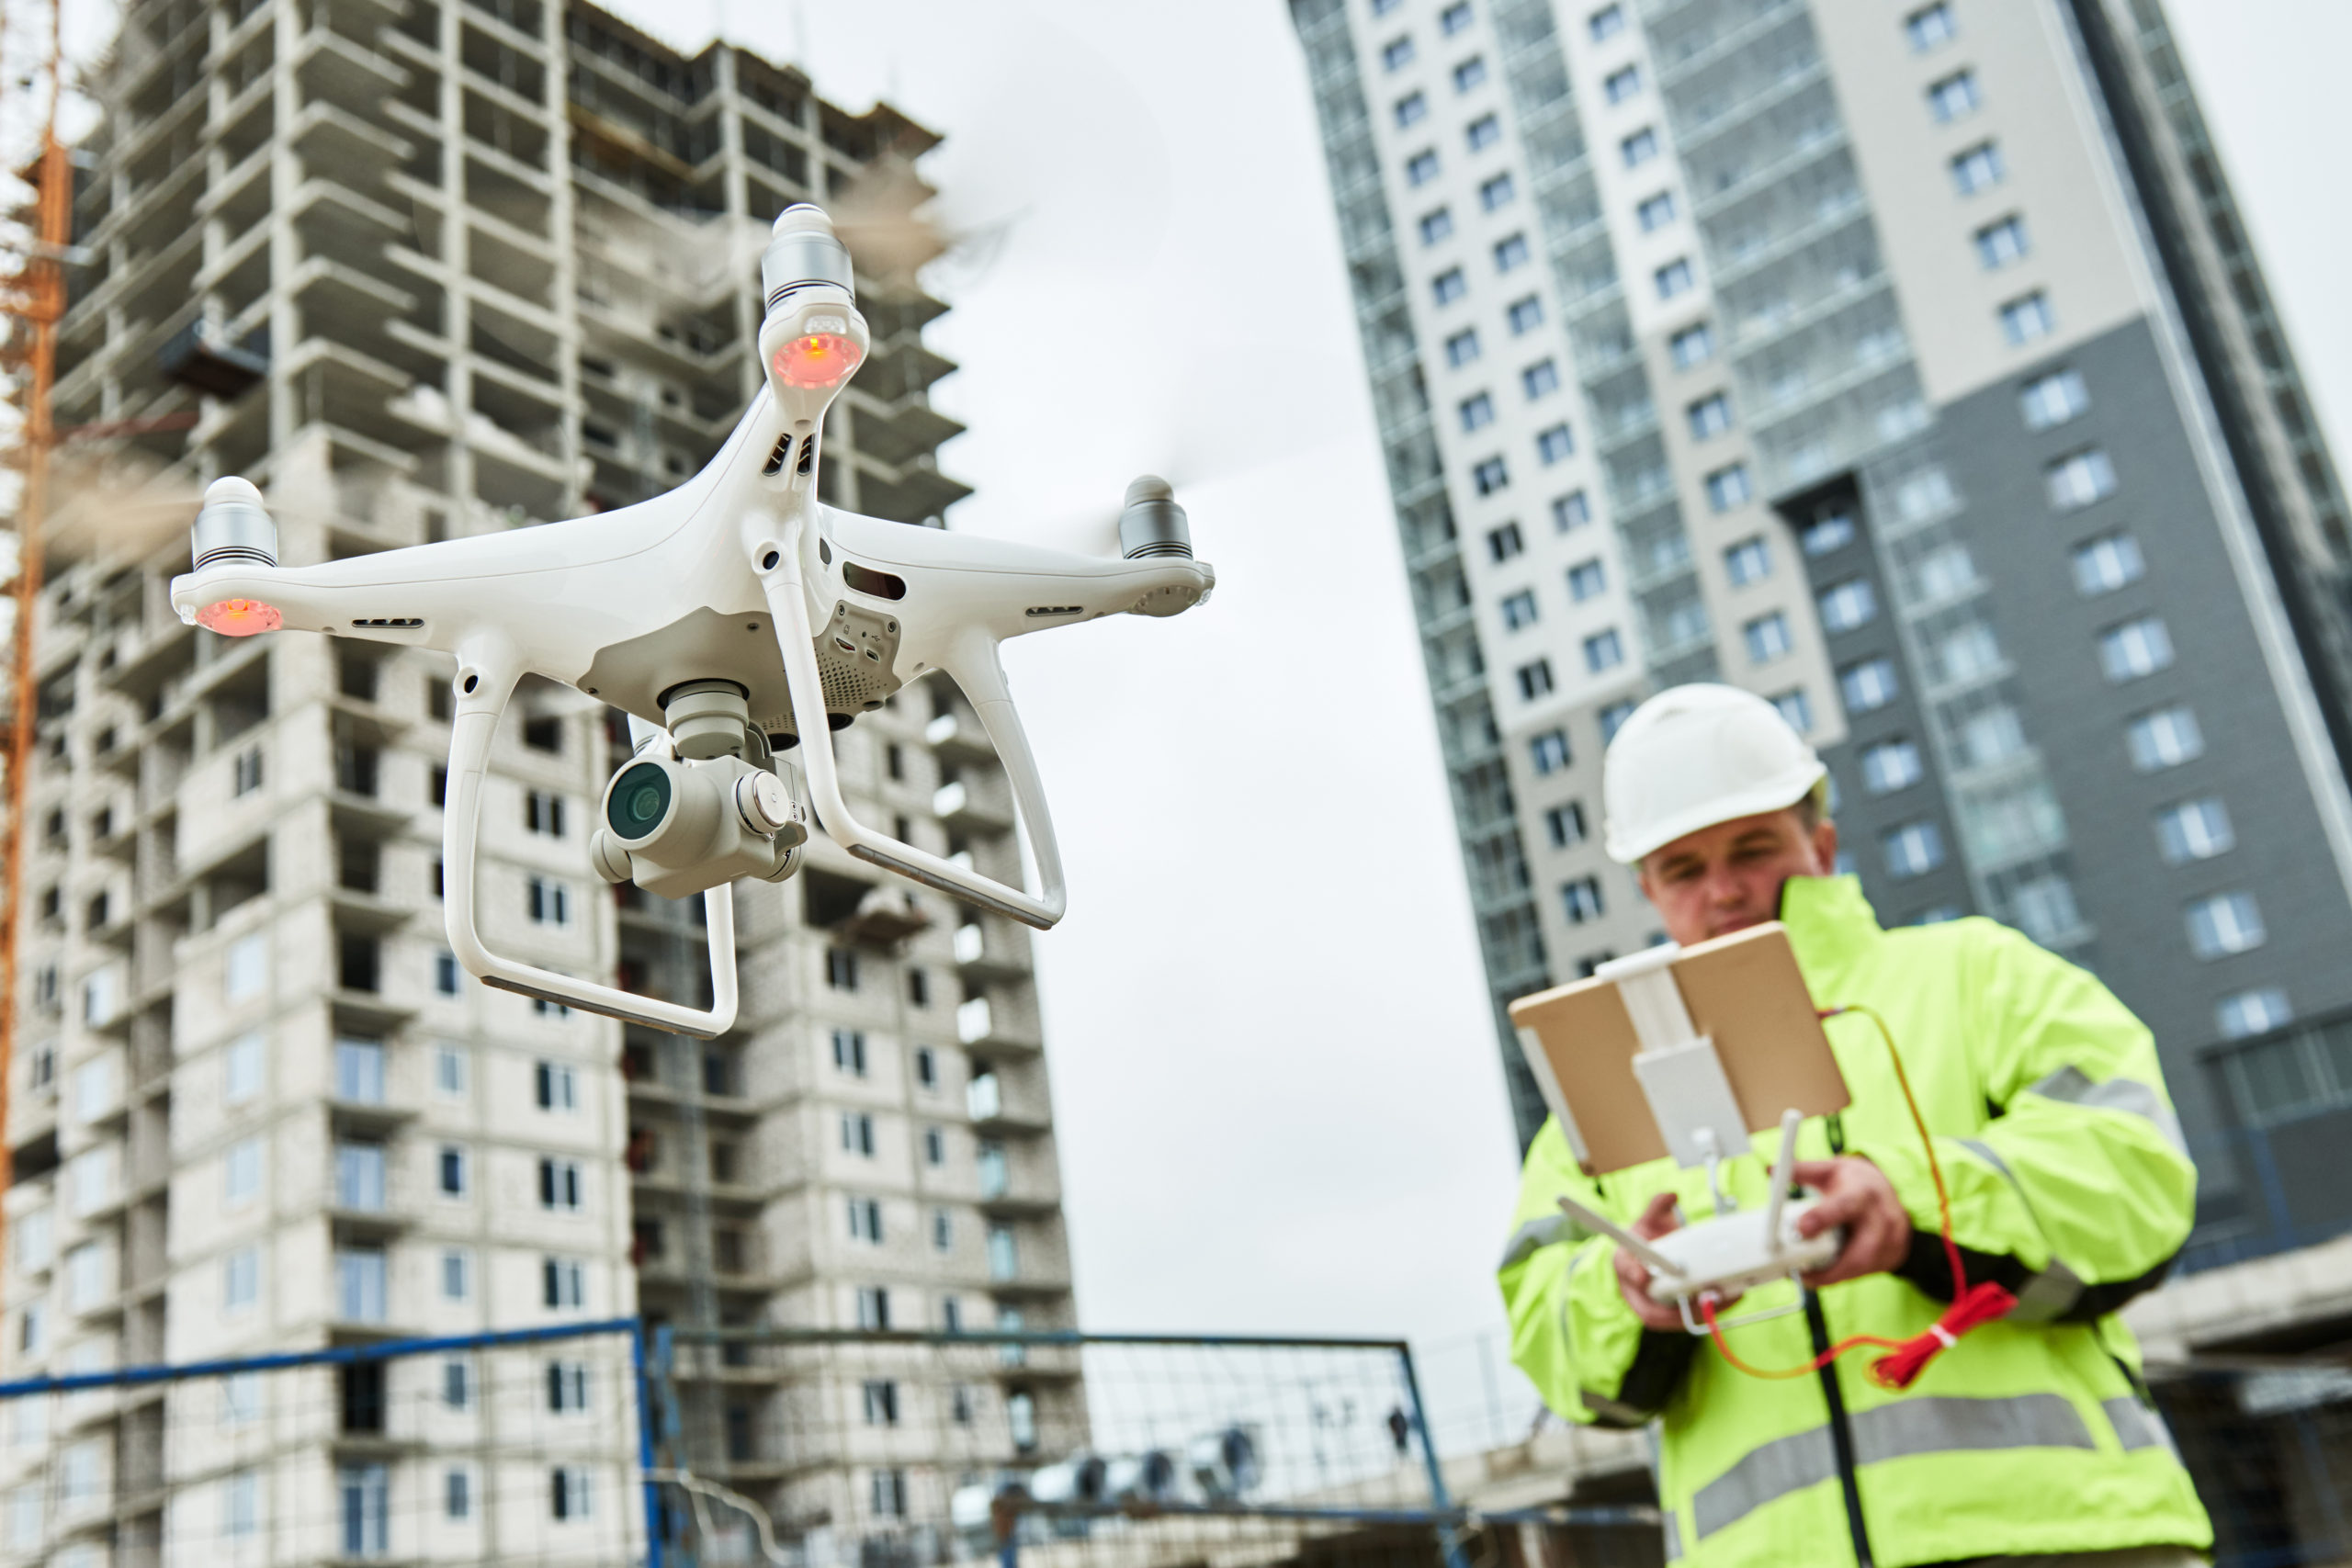 A man in a high-visibility jacket and hardhat flies a quadcopter.